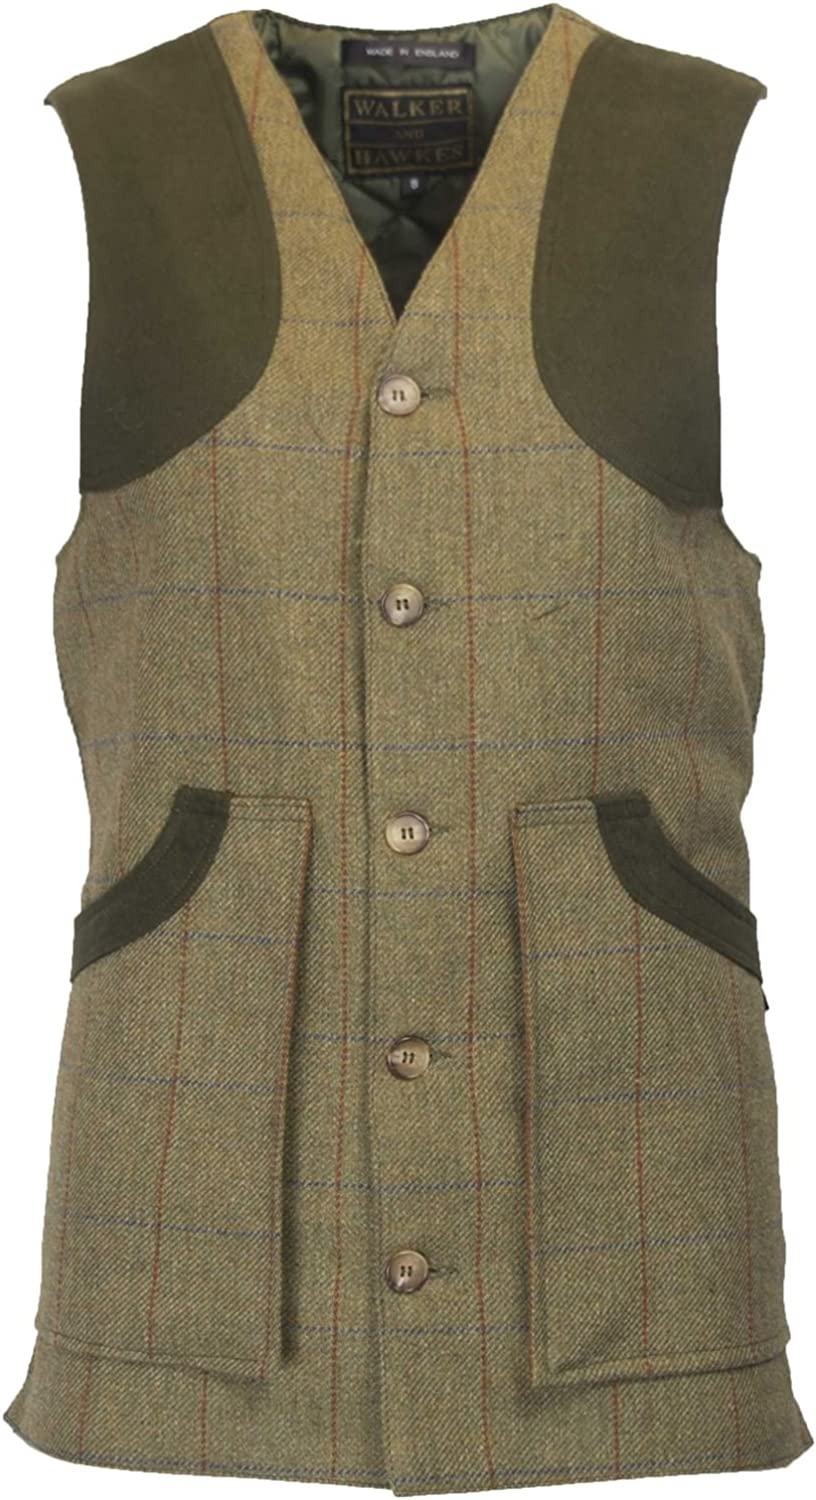 34ins CHILDRENS KEEPER TWEED SHOOTING VEST NEW HUNTING SIZES 20ins